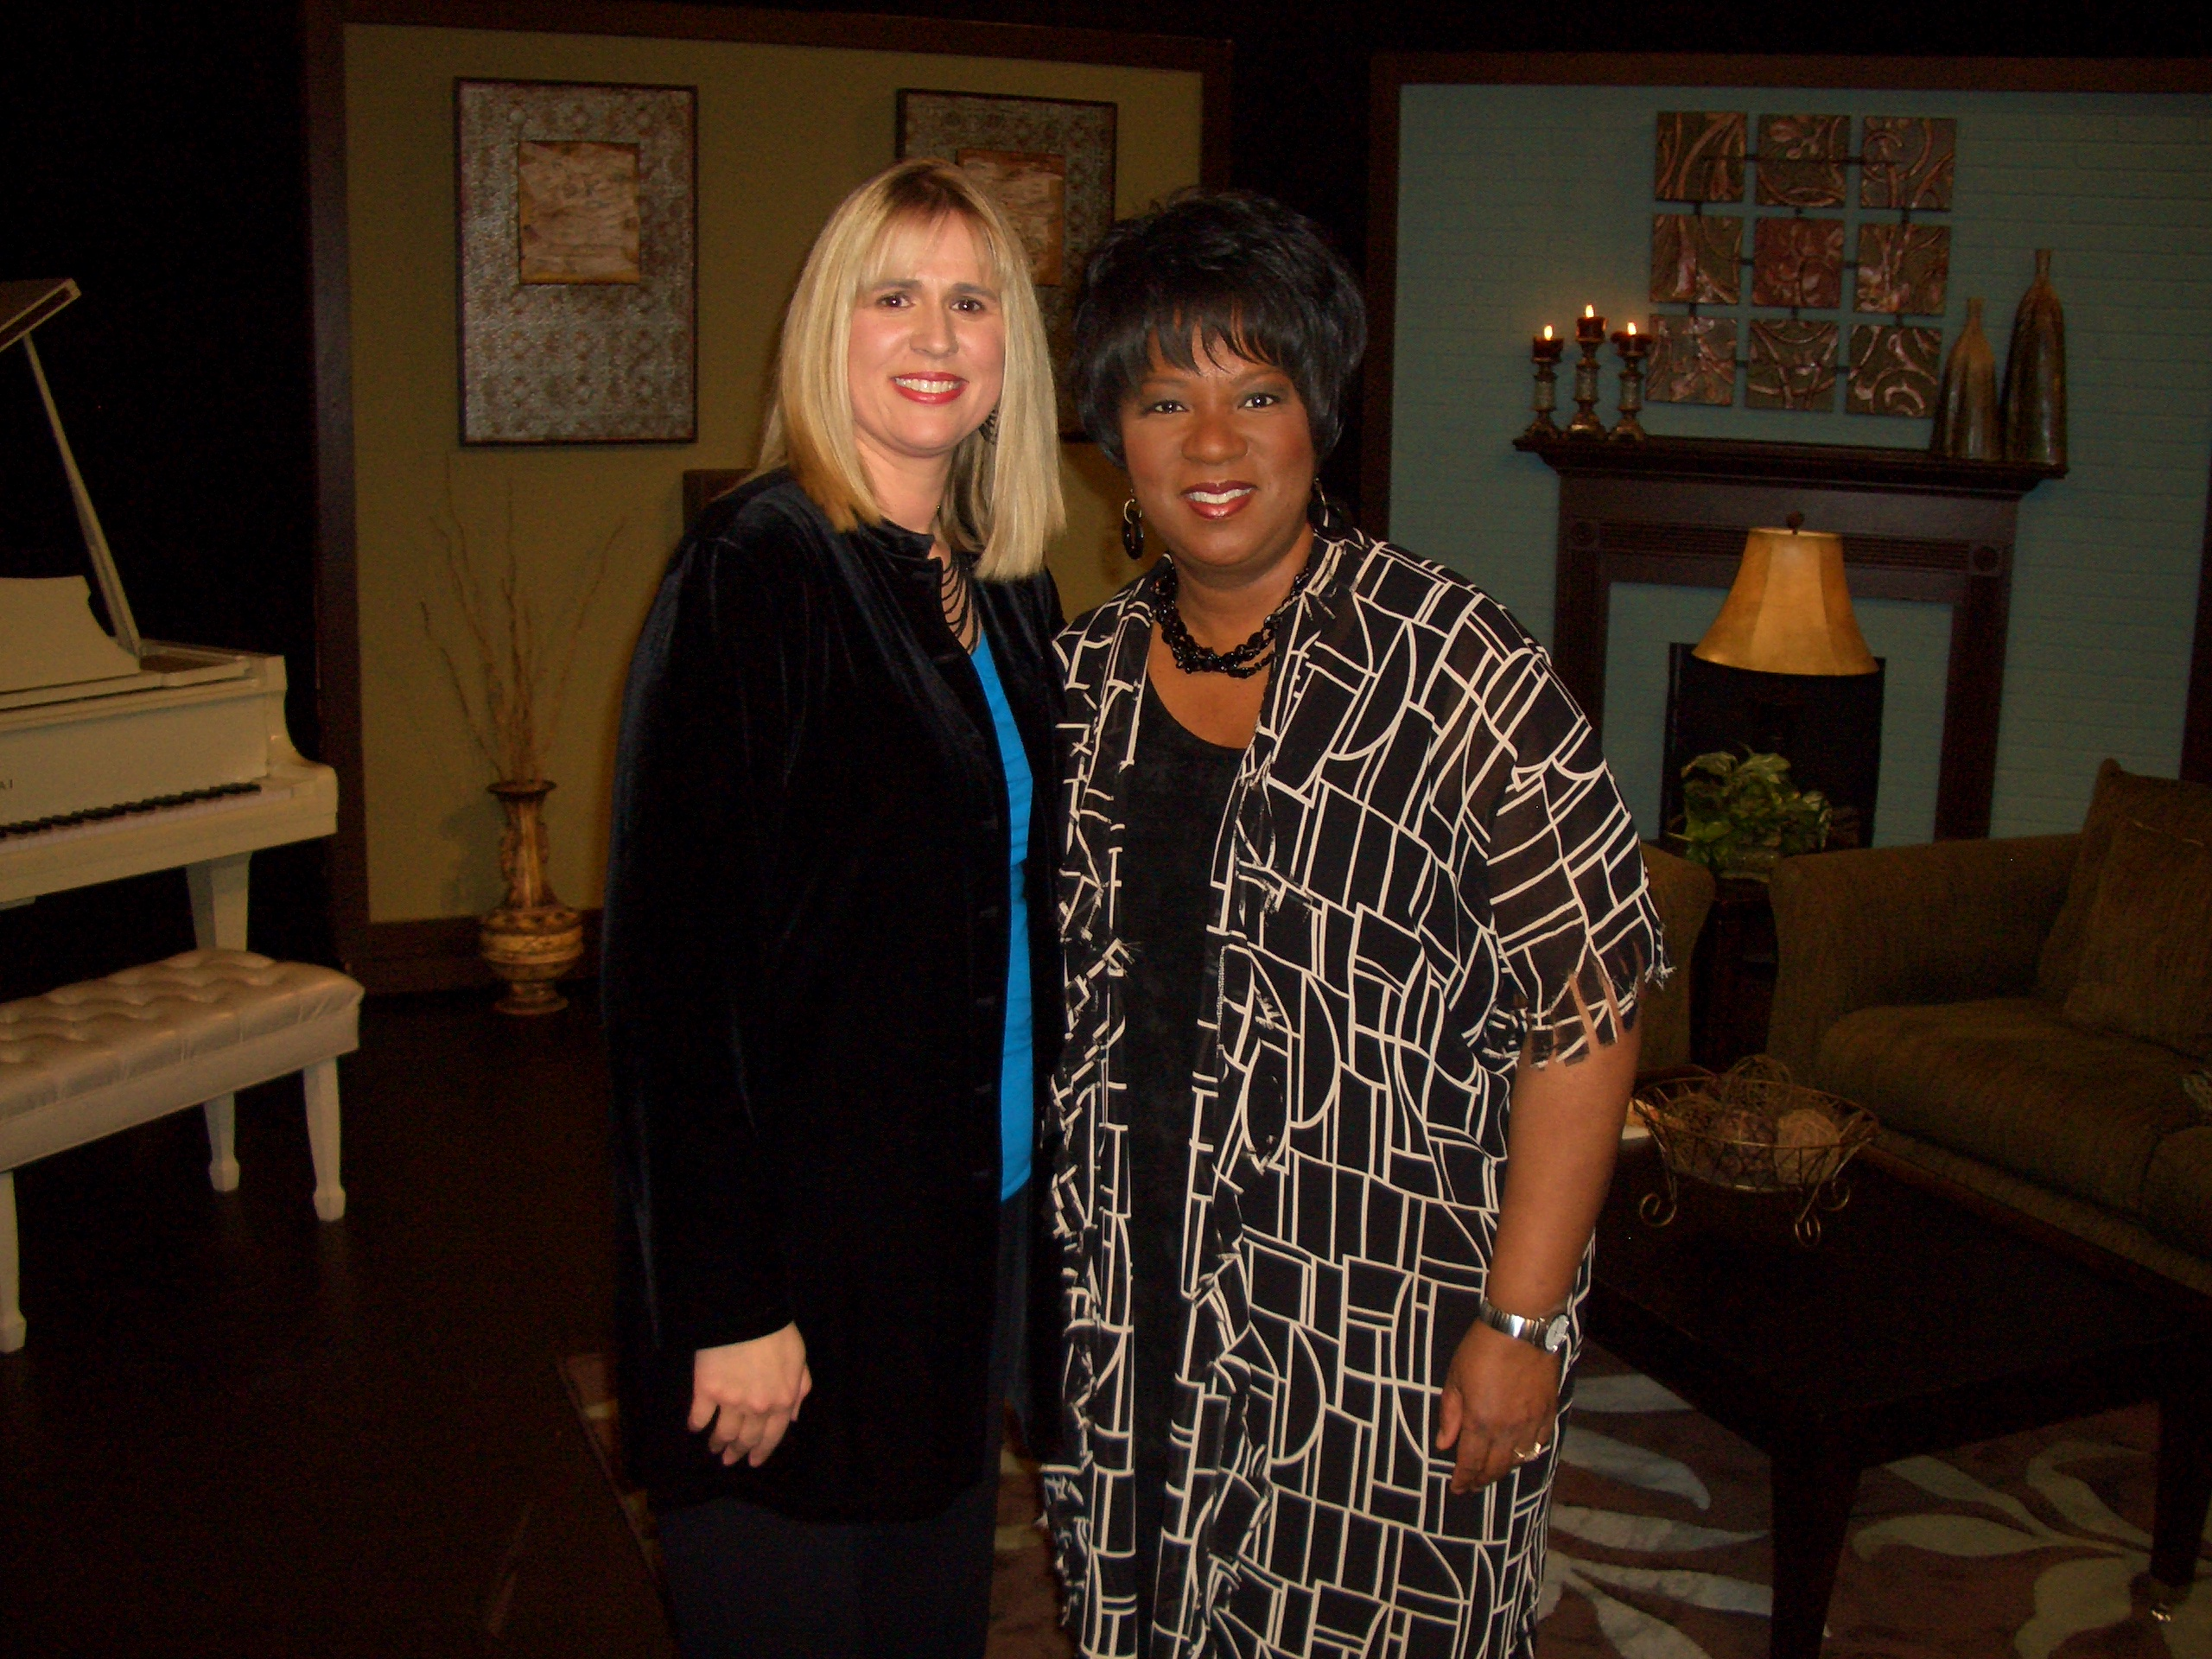 Featured guest on Babbie's House, hosted by Dove Award Singer & Song-writer, Babbie Mason which airs nationwide on Sky Angel and on WATC/TBN. http://www.babbiemason.com